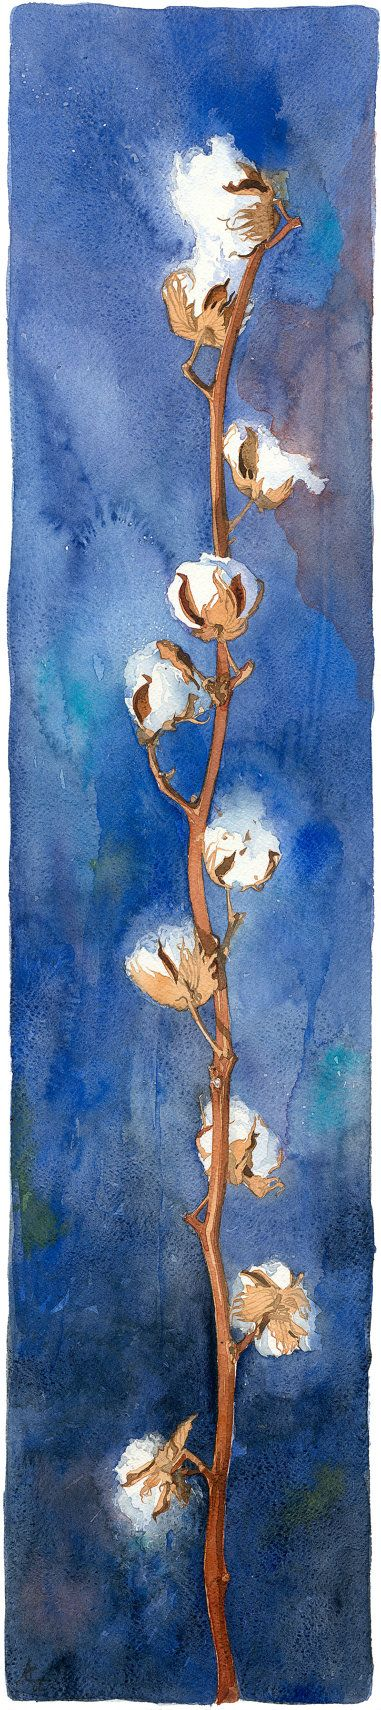 Title: Cotton  This is a high quality full sized Giclée print, of an original watercolour of a branch from a cotton plant.  The original painting